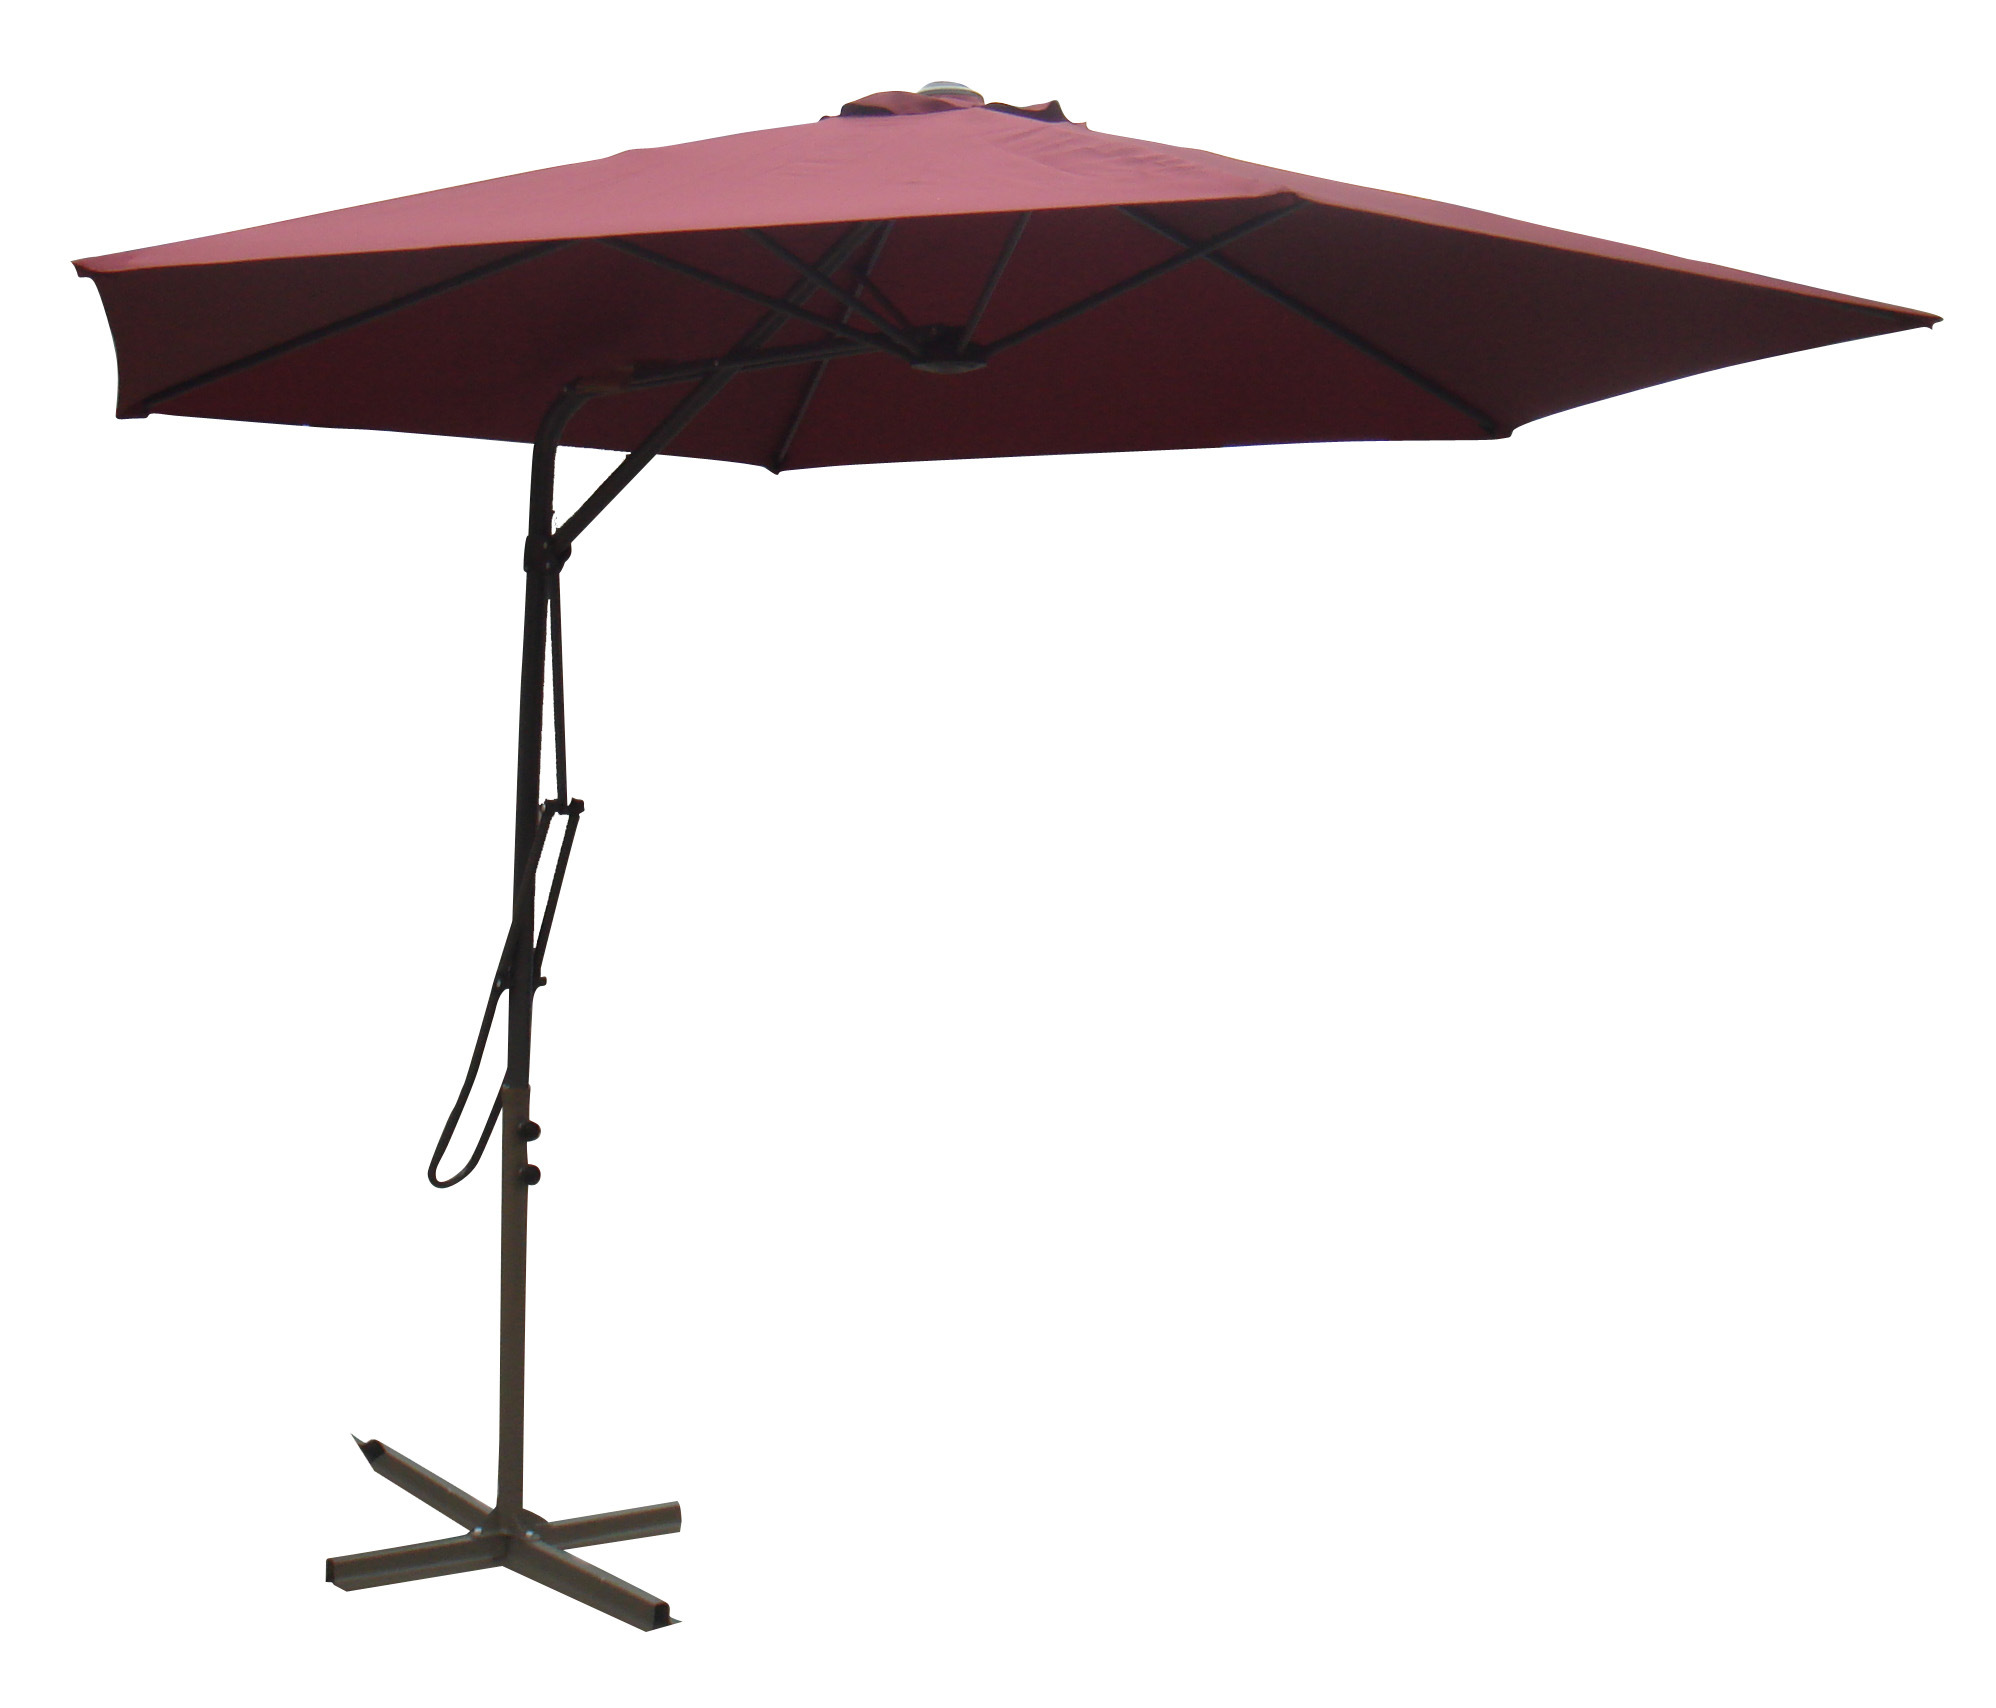 Super Sale : Offset Umbrellas - Shop at Patio Umbrellas